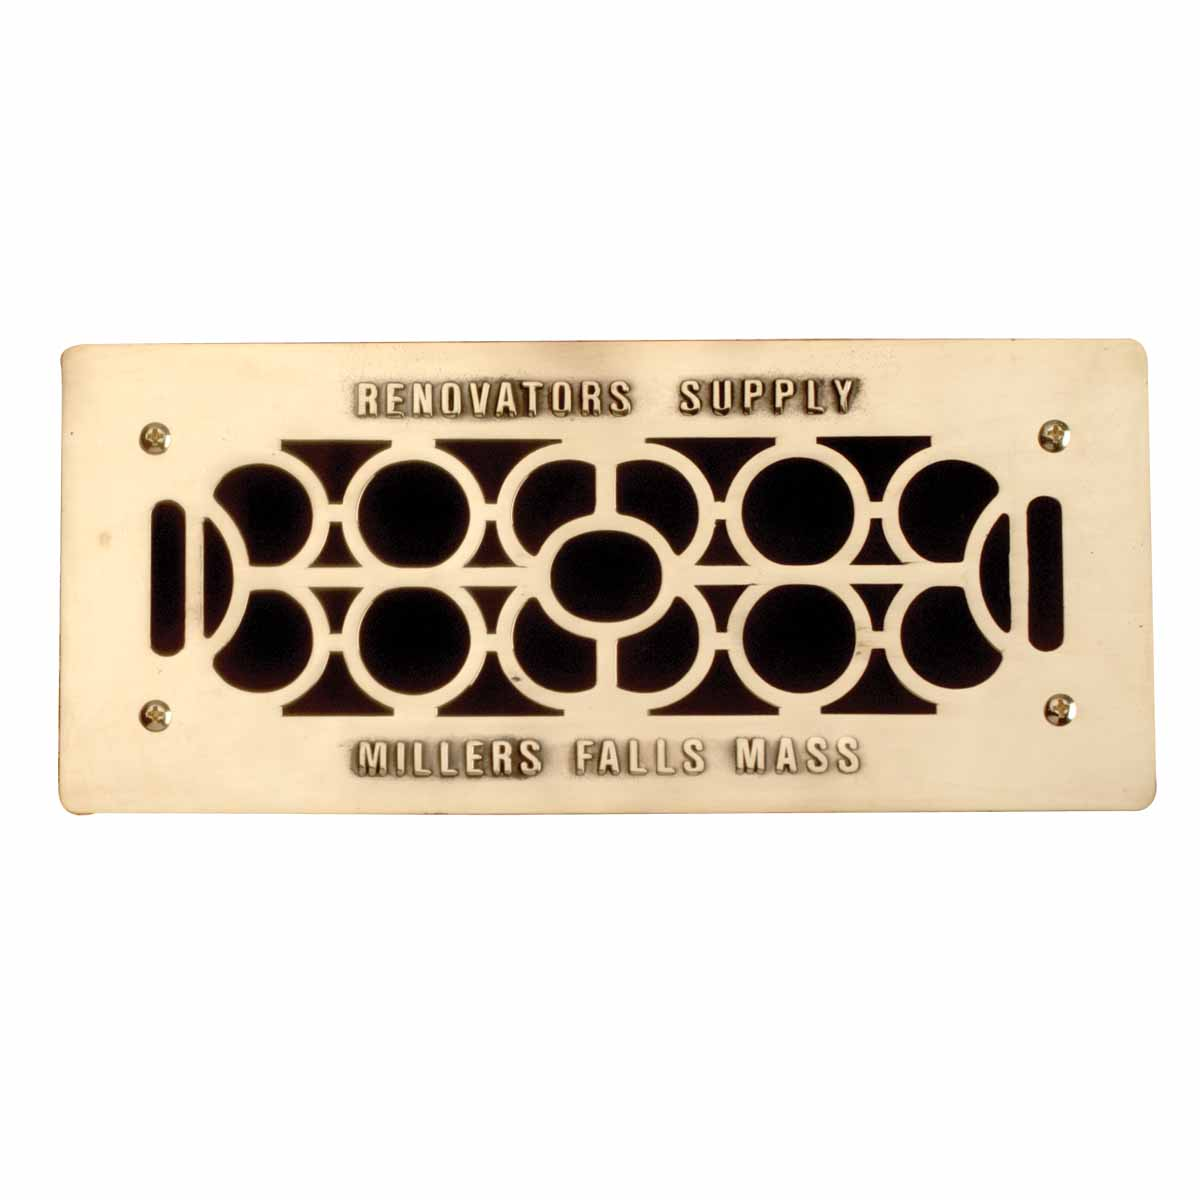 #A57426 Floor Wall Heat Air Grill Vent Grate Solid Brass 4.75 X 11  Most Effective 2855 Floor And Wall Registers pictures with 1200x1200 px on helpvideos.info - Air Conditioners, Air Coolers and more